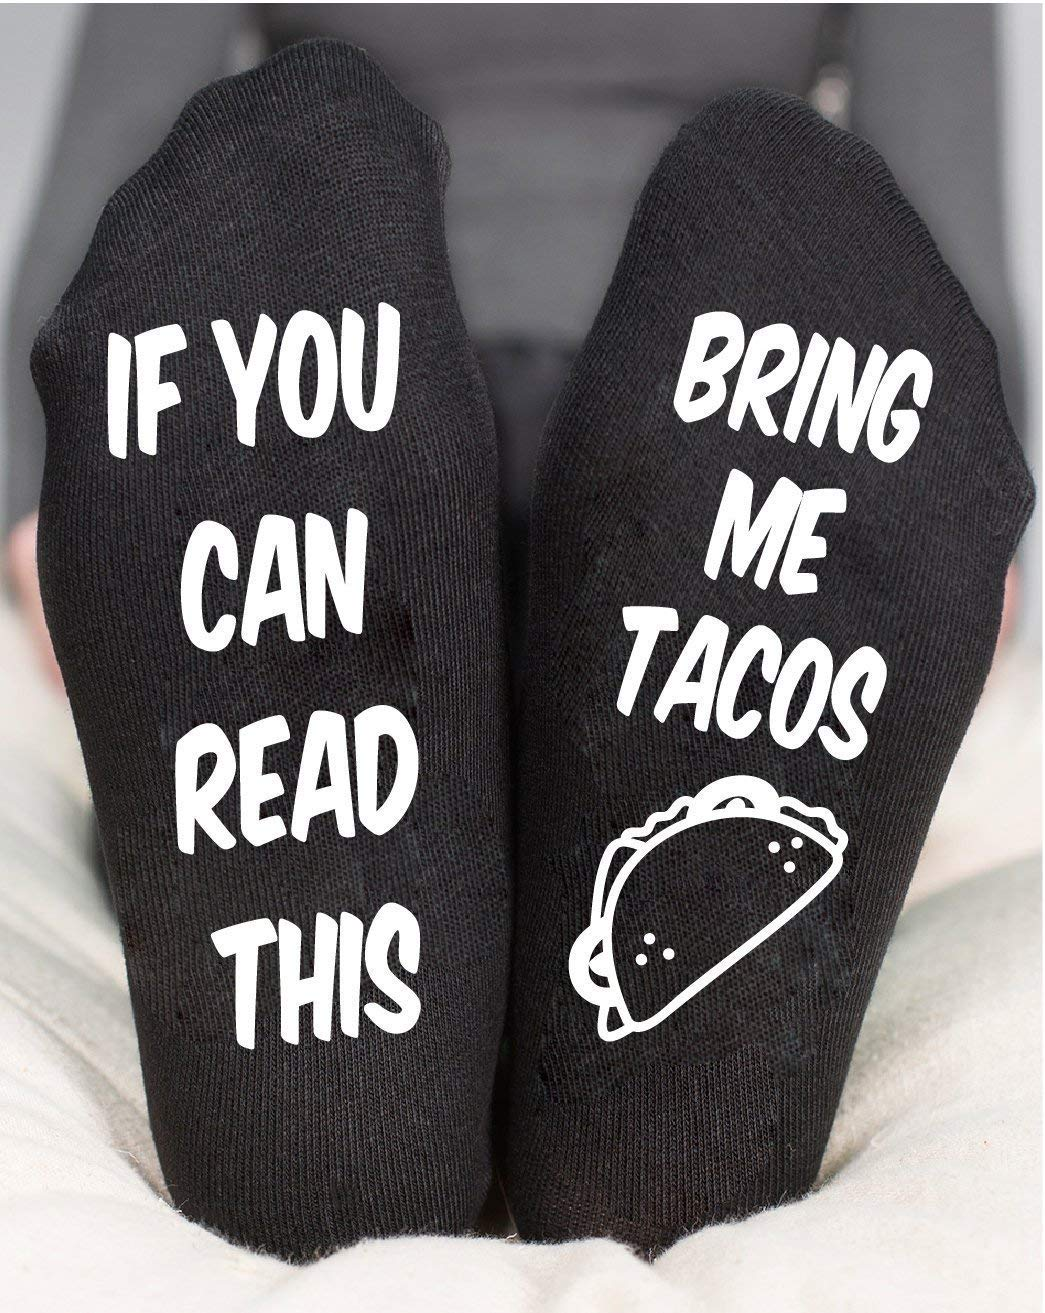 If You Can Read This Socks Bring Me Tacos Custom Birthday Gift